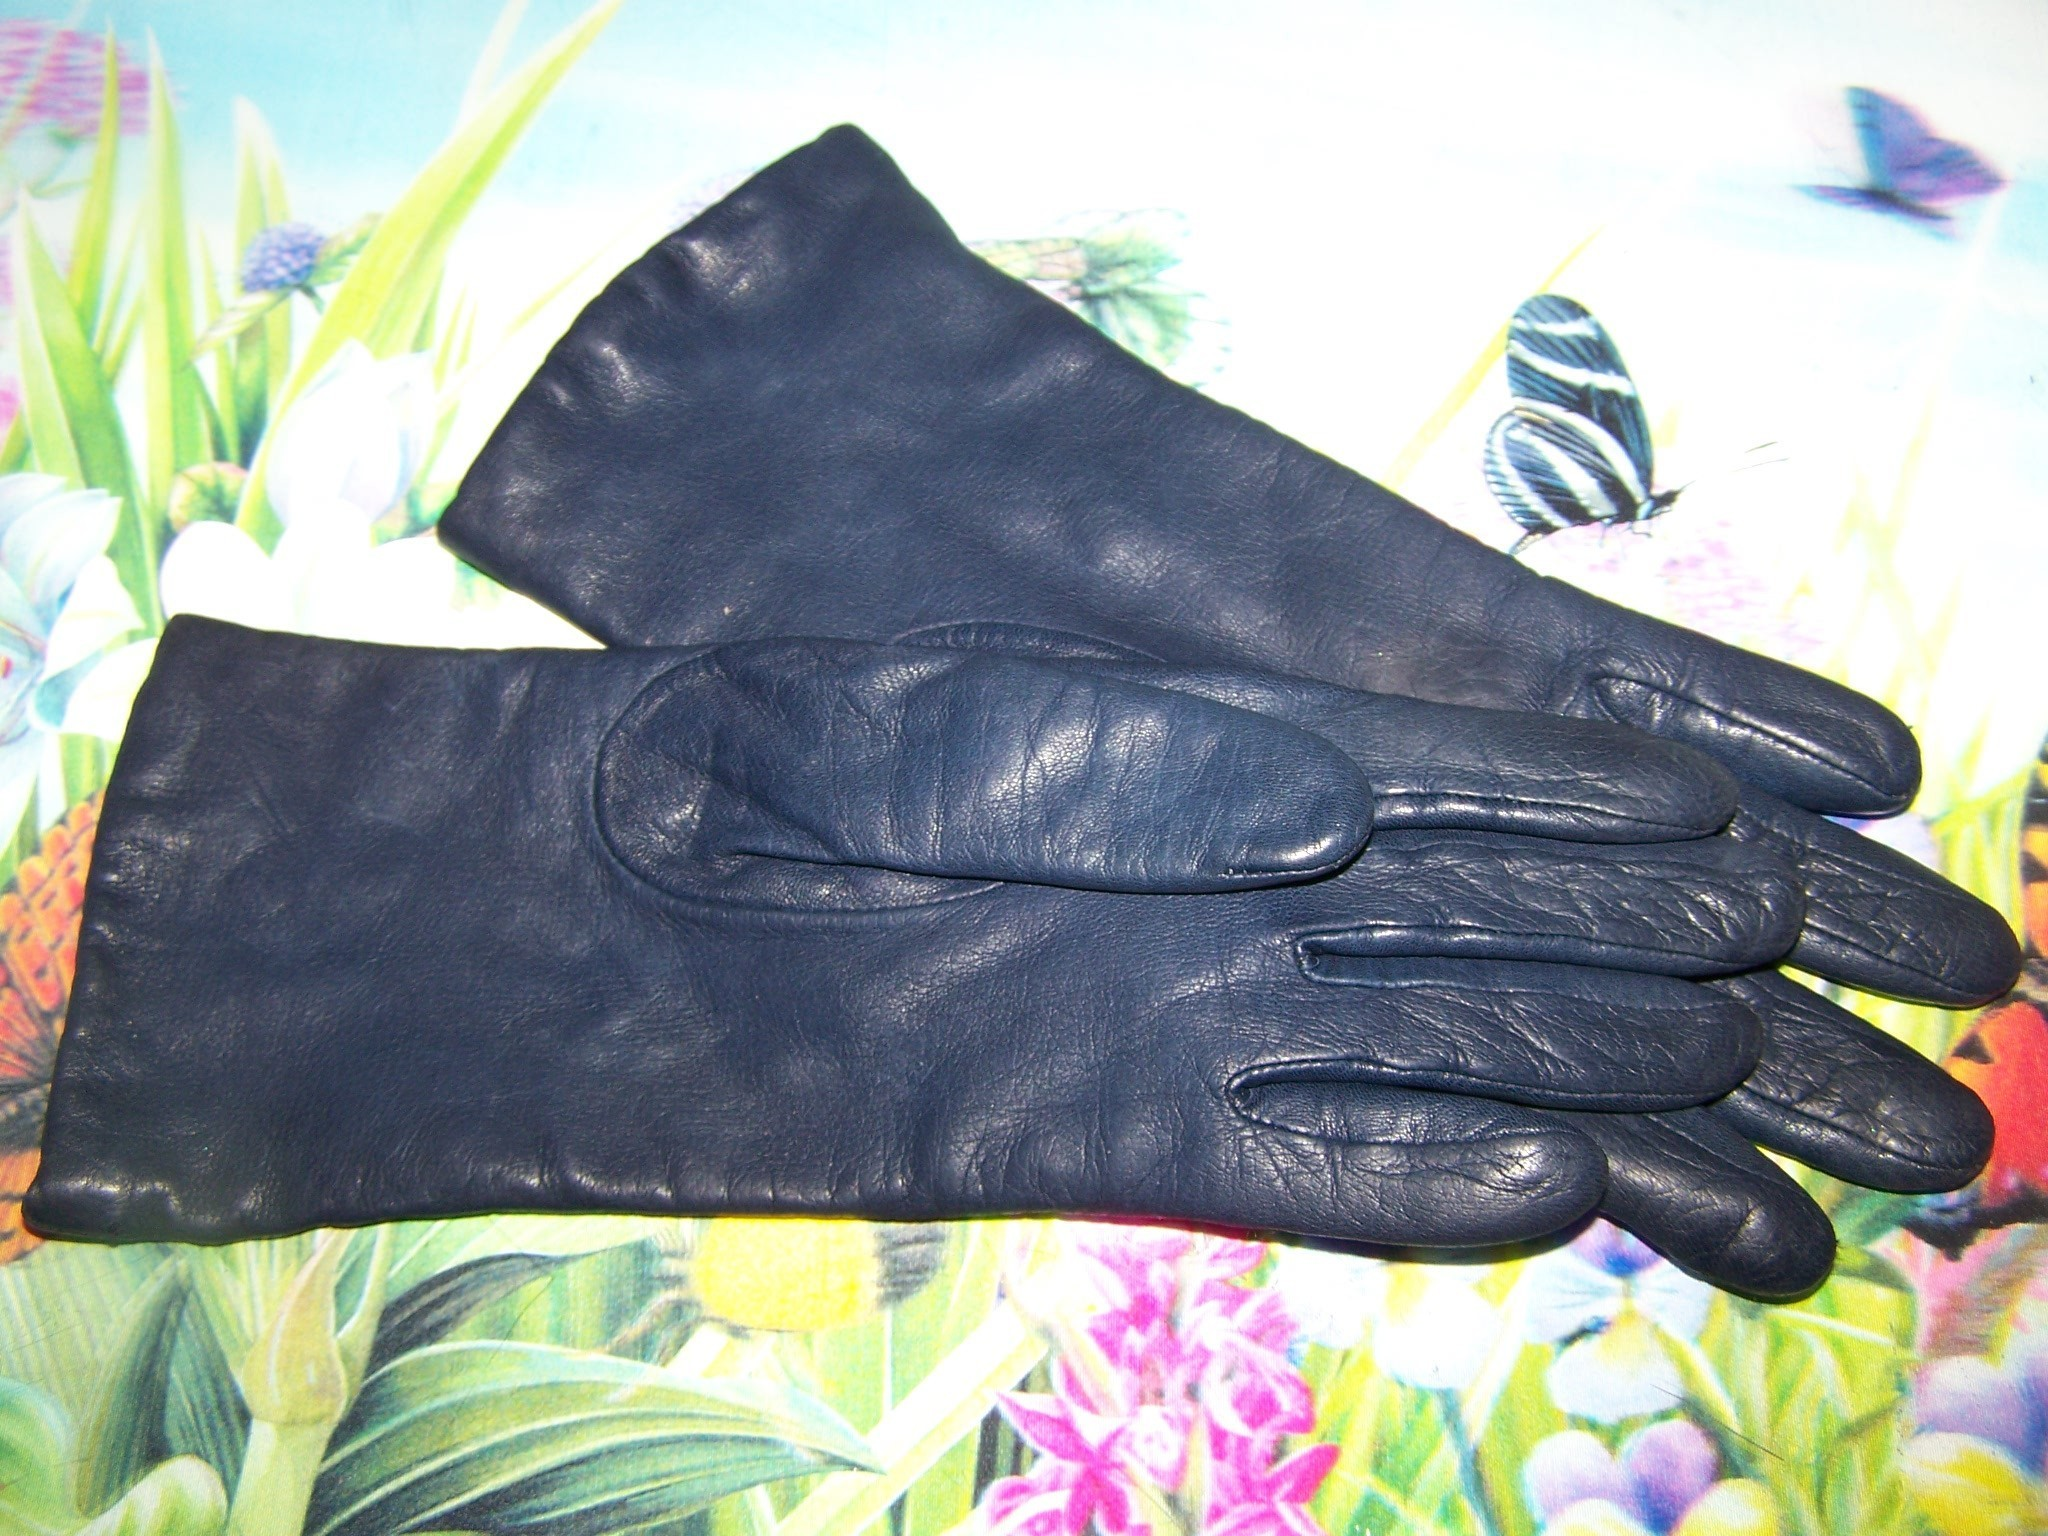 Ladies leather gloves blue - Roll Over Large Image To Magnify Click Large Image To Zoom